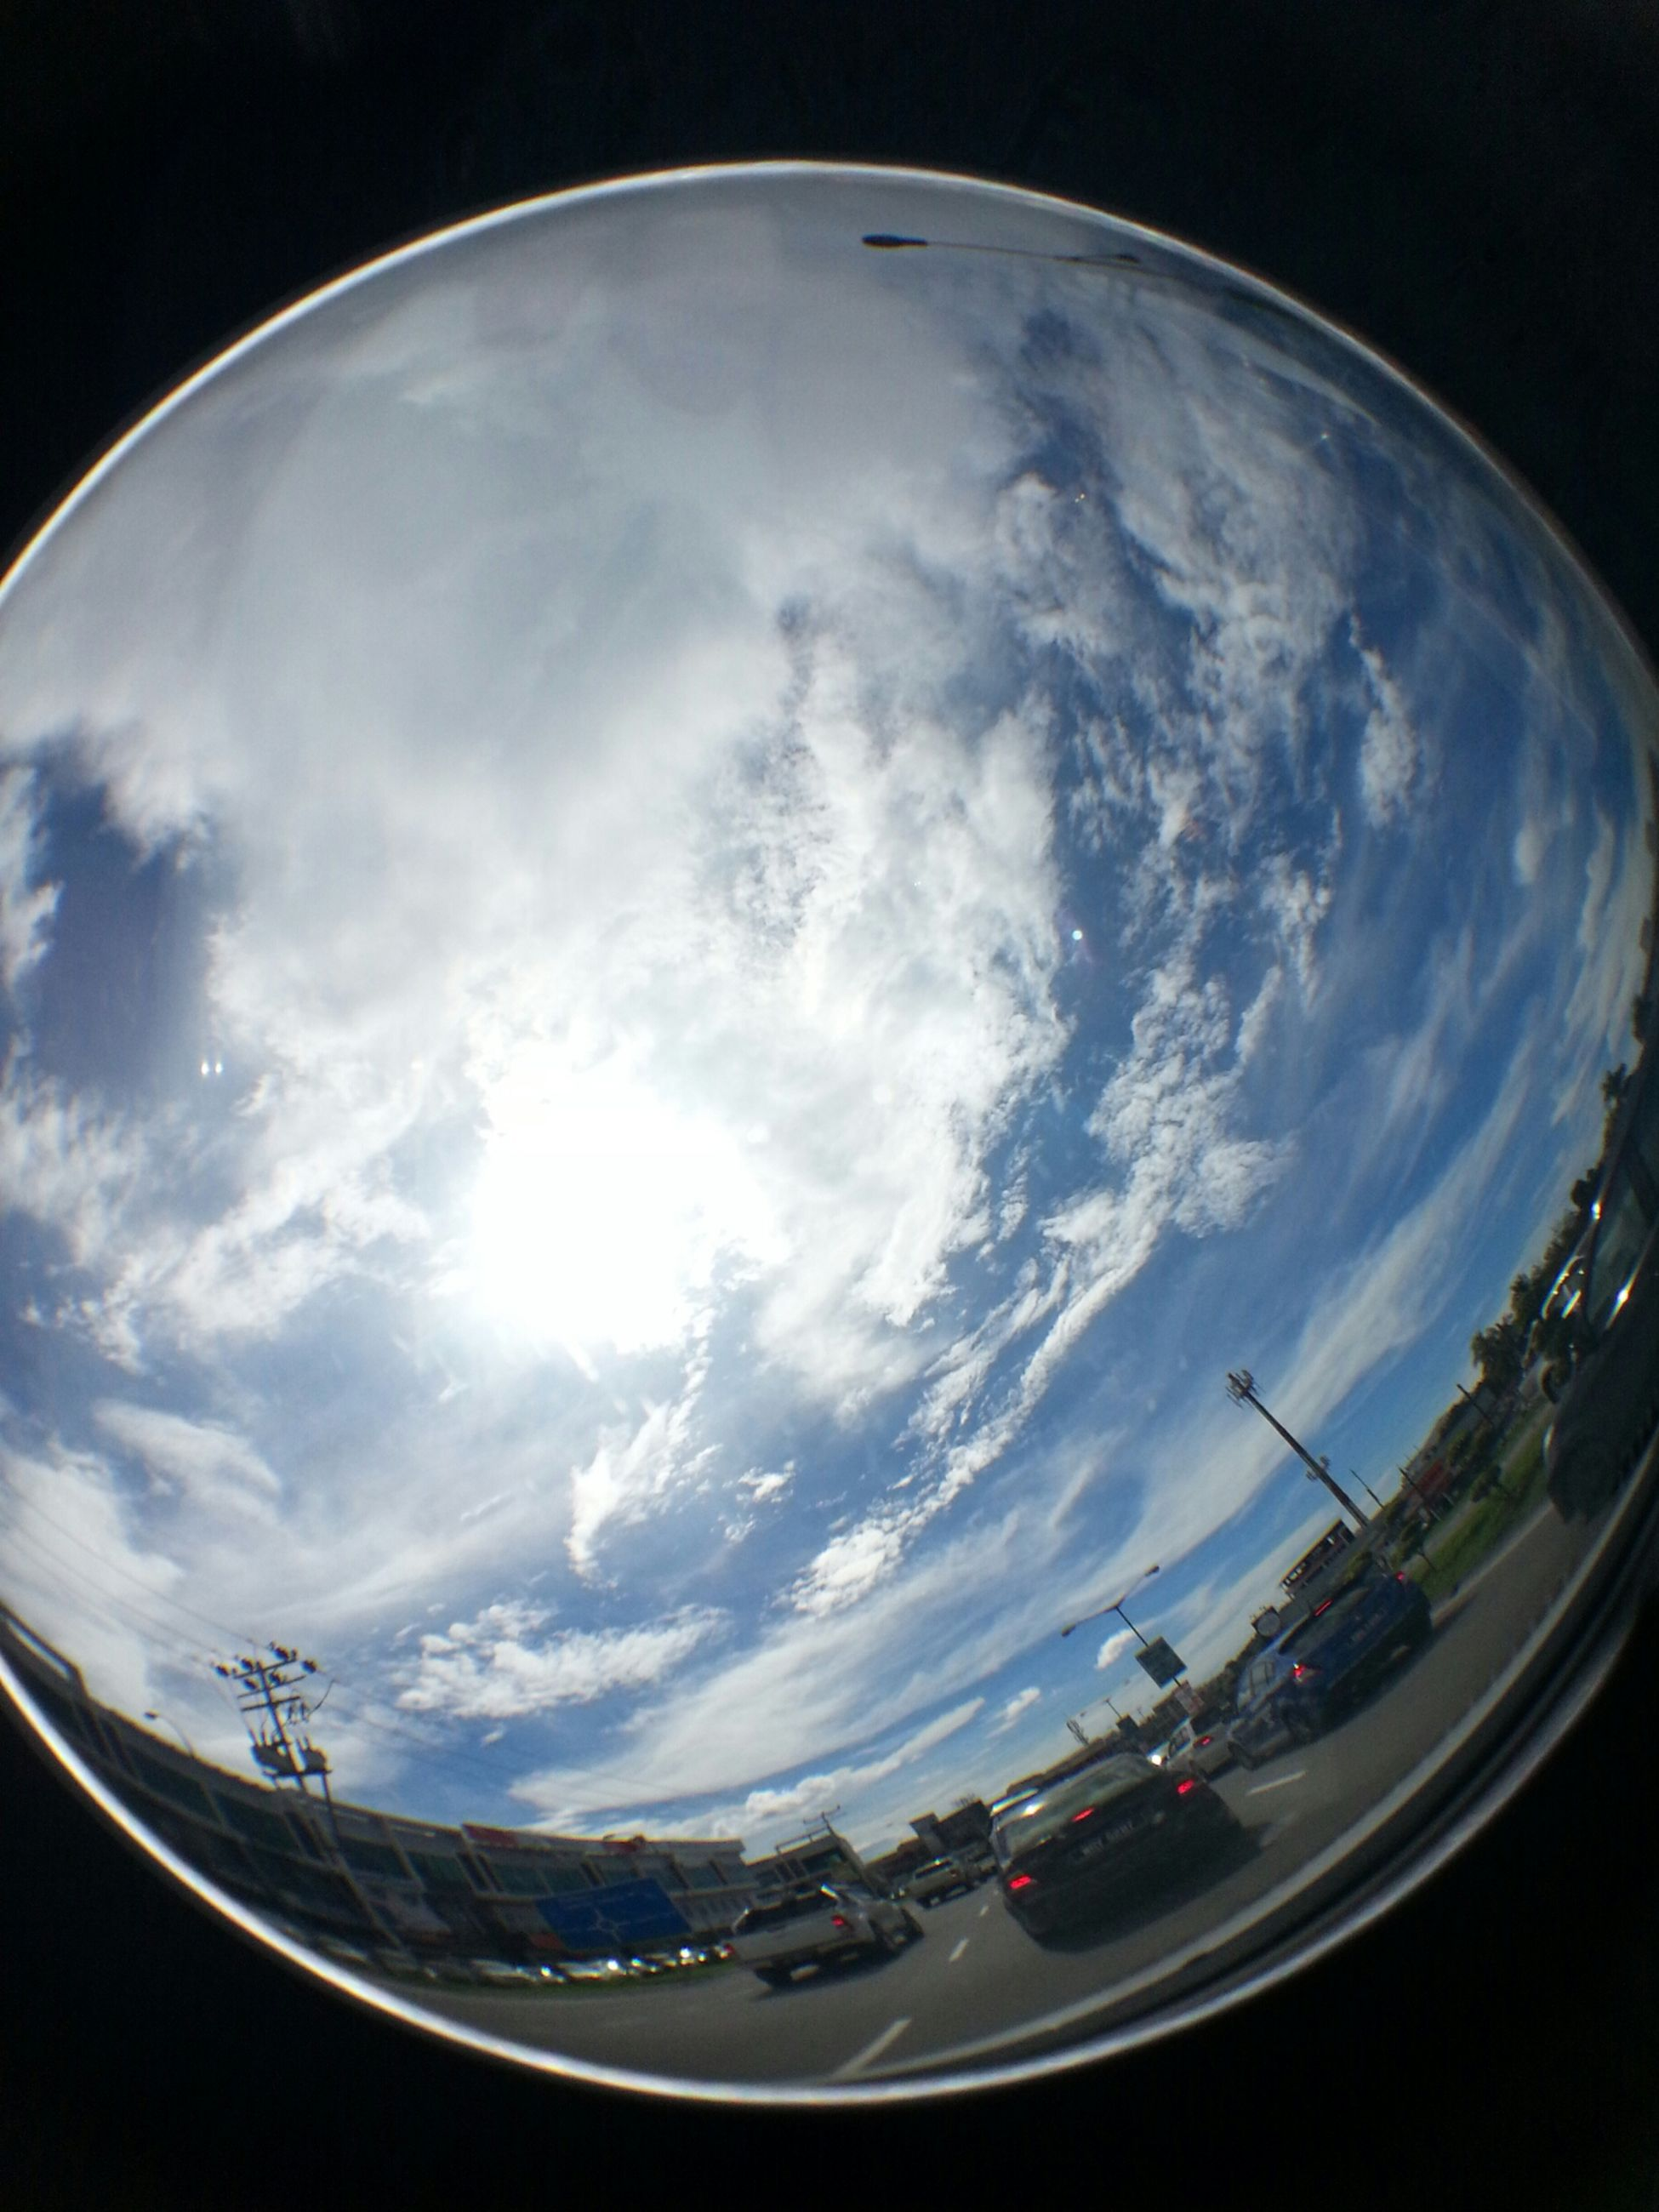 sky, cloud - sky, low angle view, fish-eye lens, circle, cloudy, cloud, transportation, nature, no people, outdoors, day, airplane, air vehicle, scenics, mid-air, glass - material, sunlight, reflection, flying